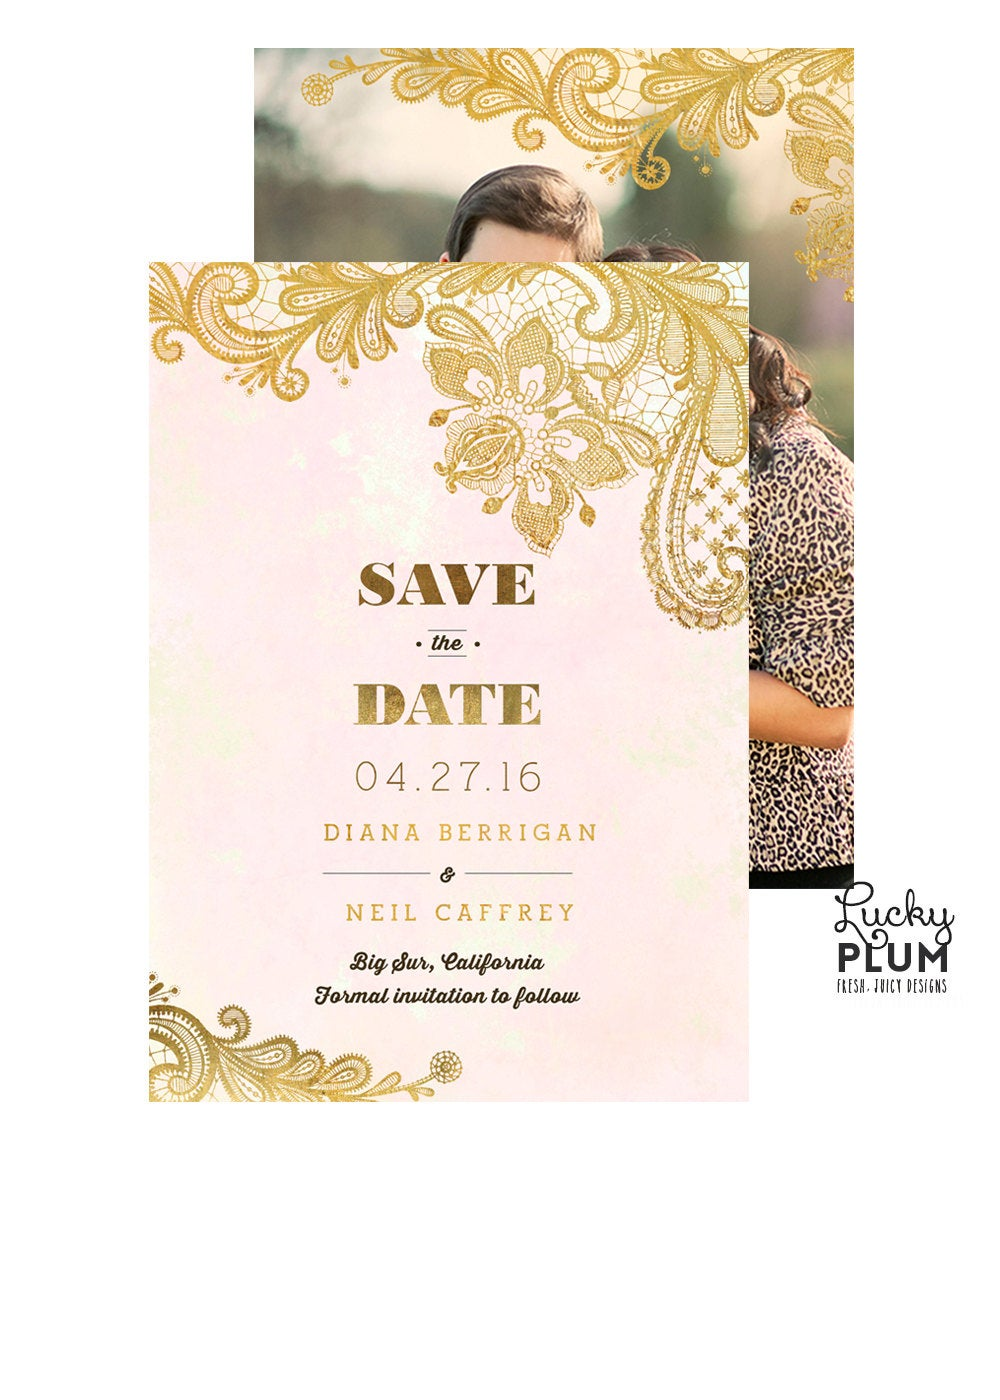 Save The Date Invitation/Lace Rustic Invite Photo Gold